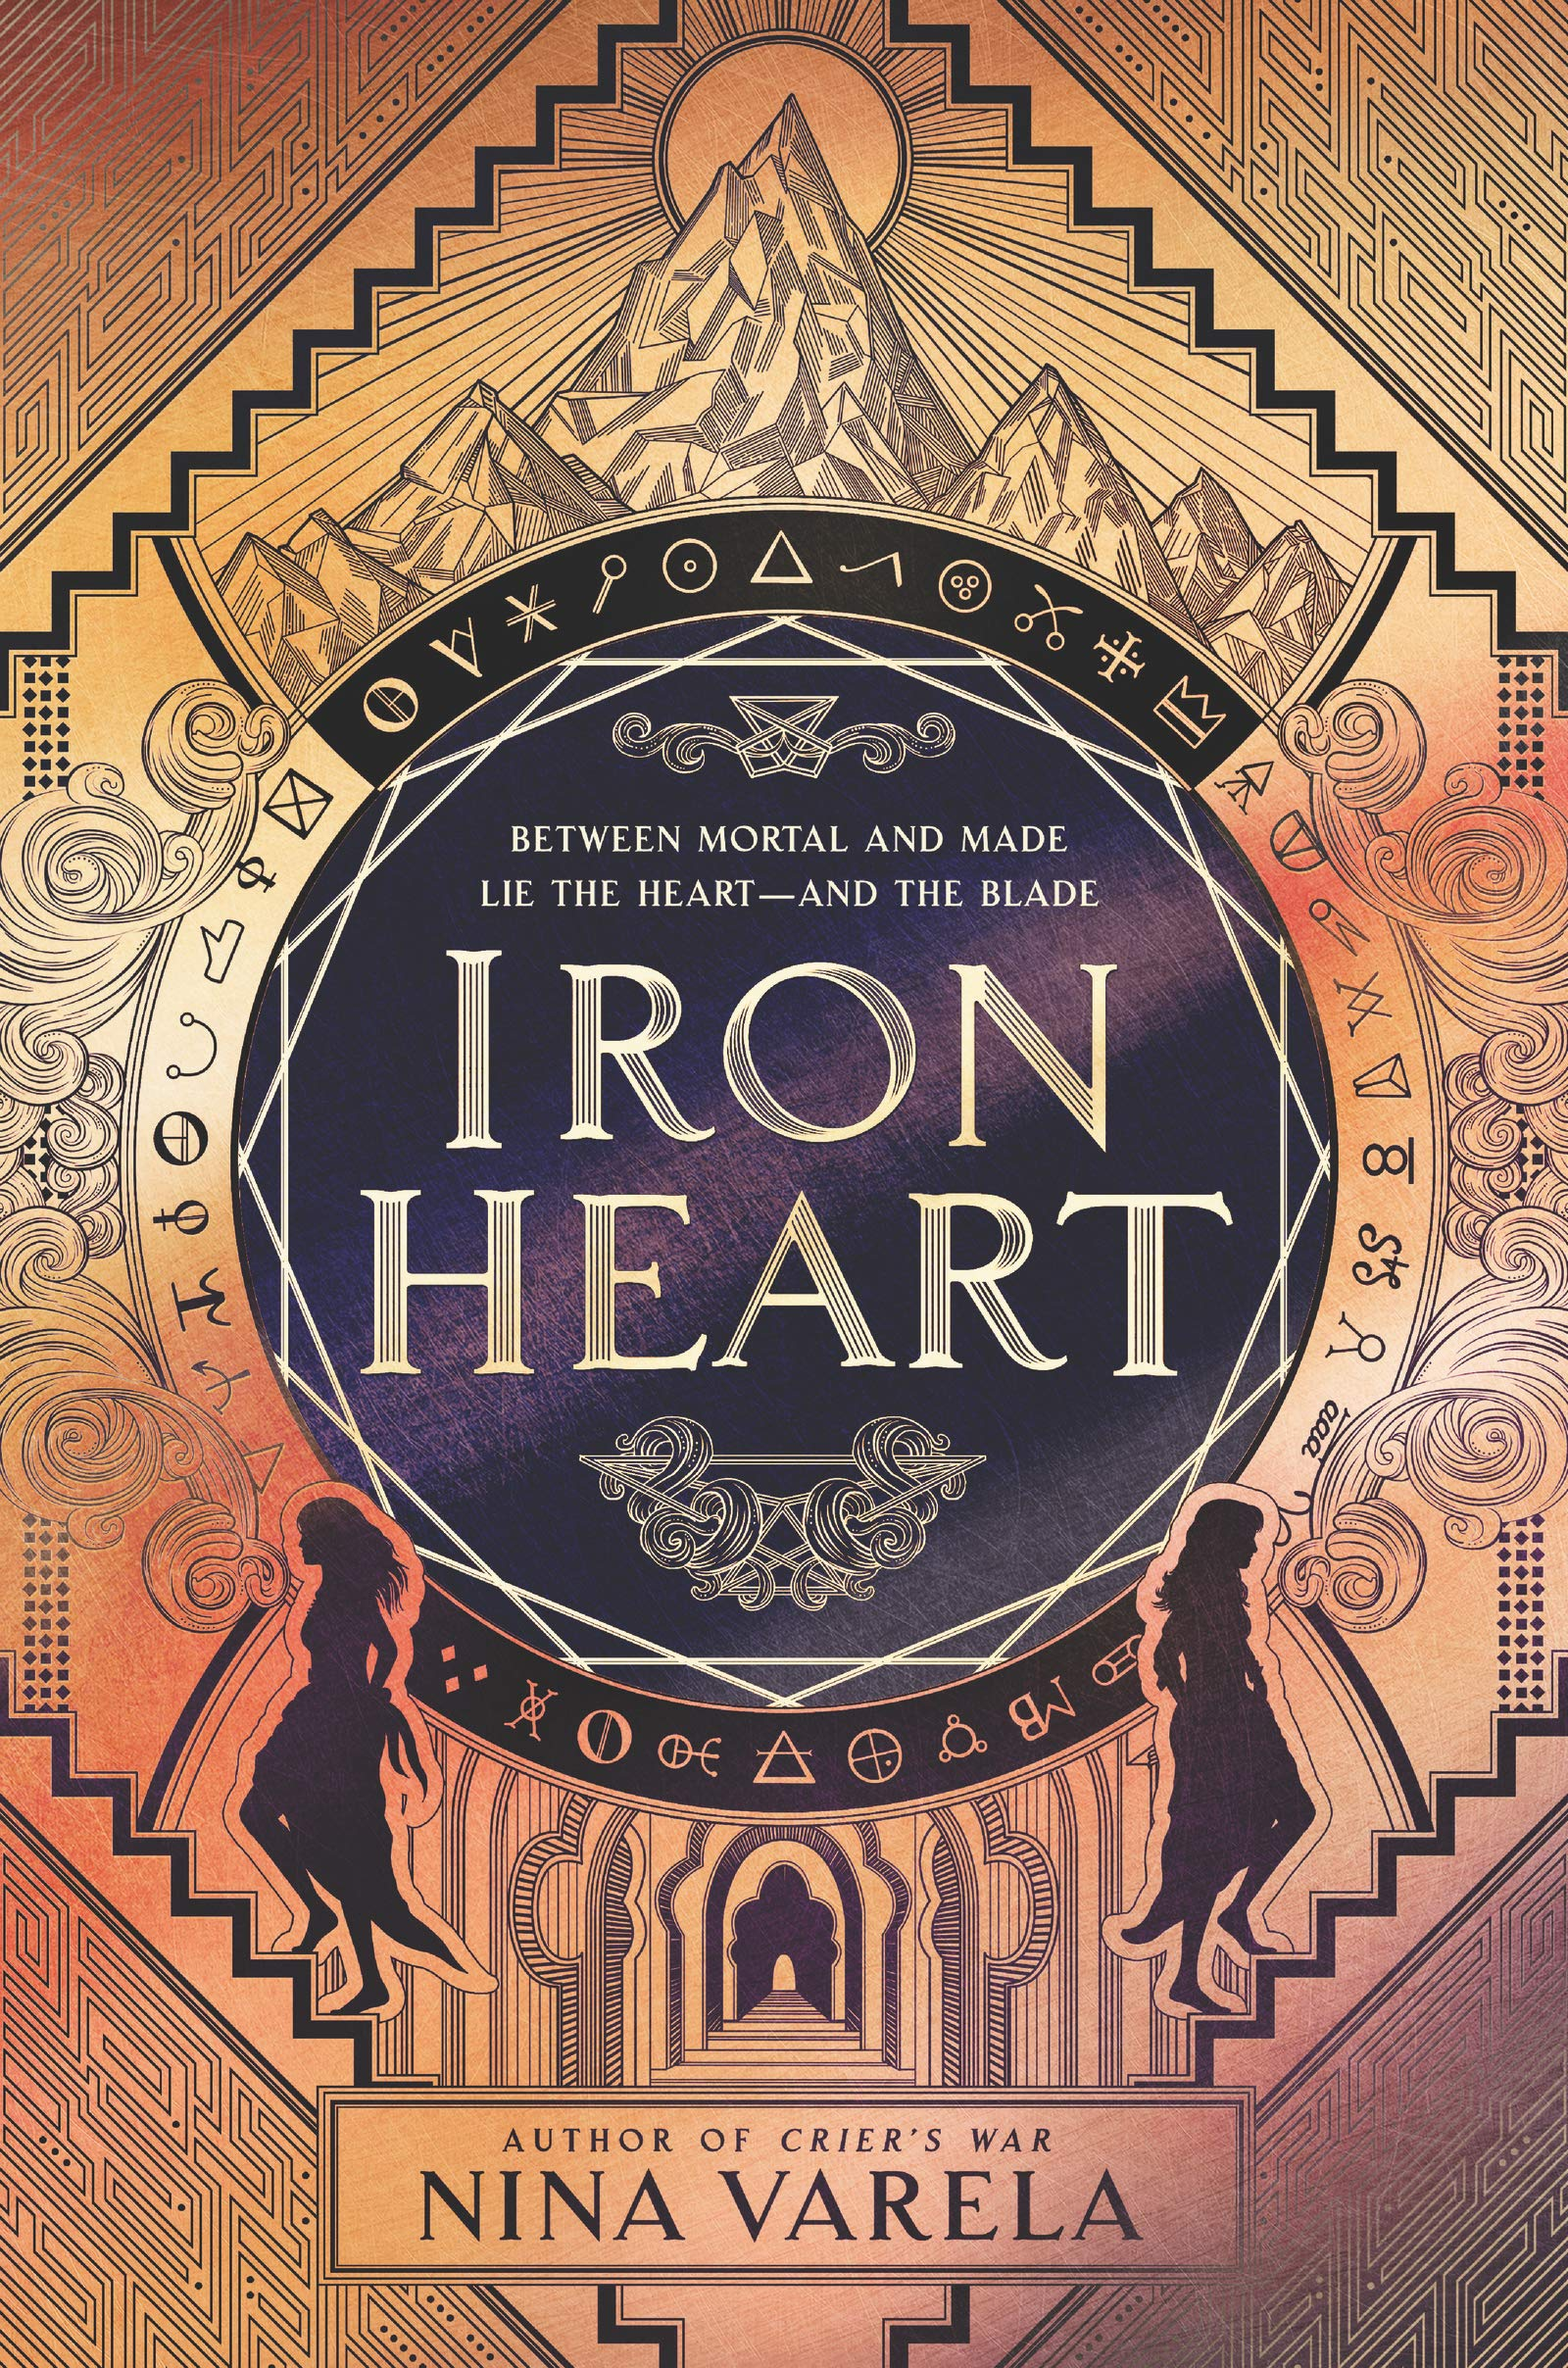 Amazon.com: Iron Heart (Crier's War, 2) (9780062823977): Varela, Nina: Books